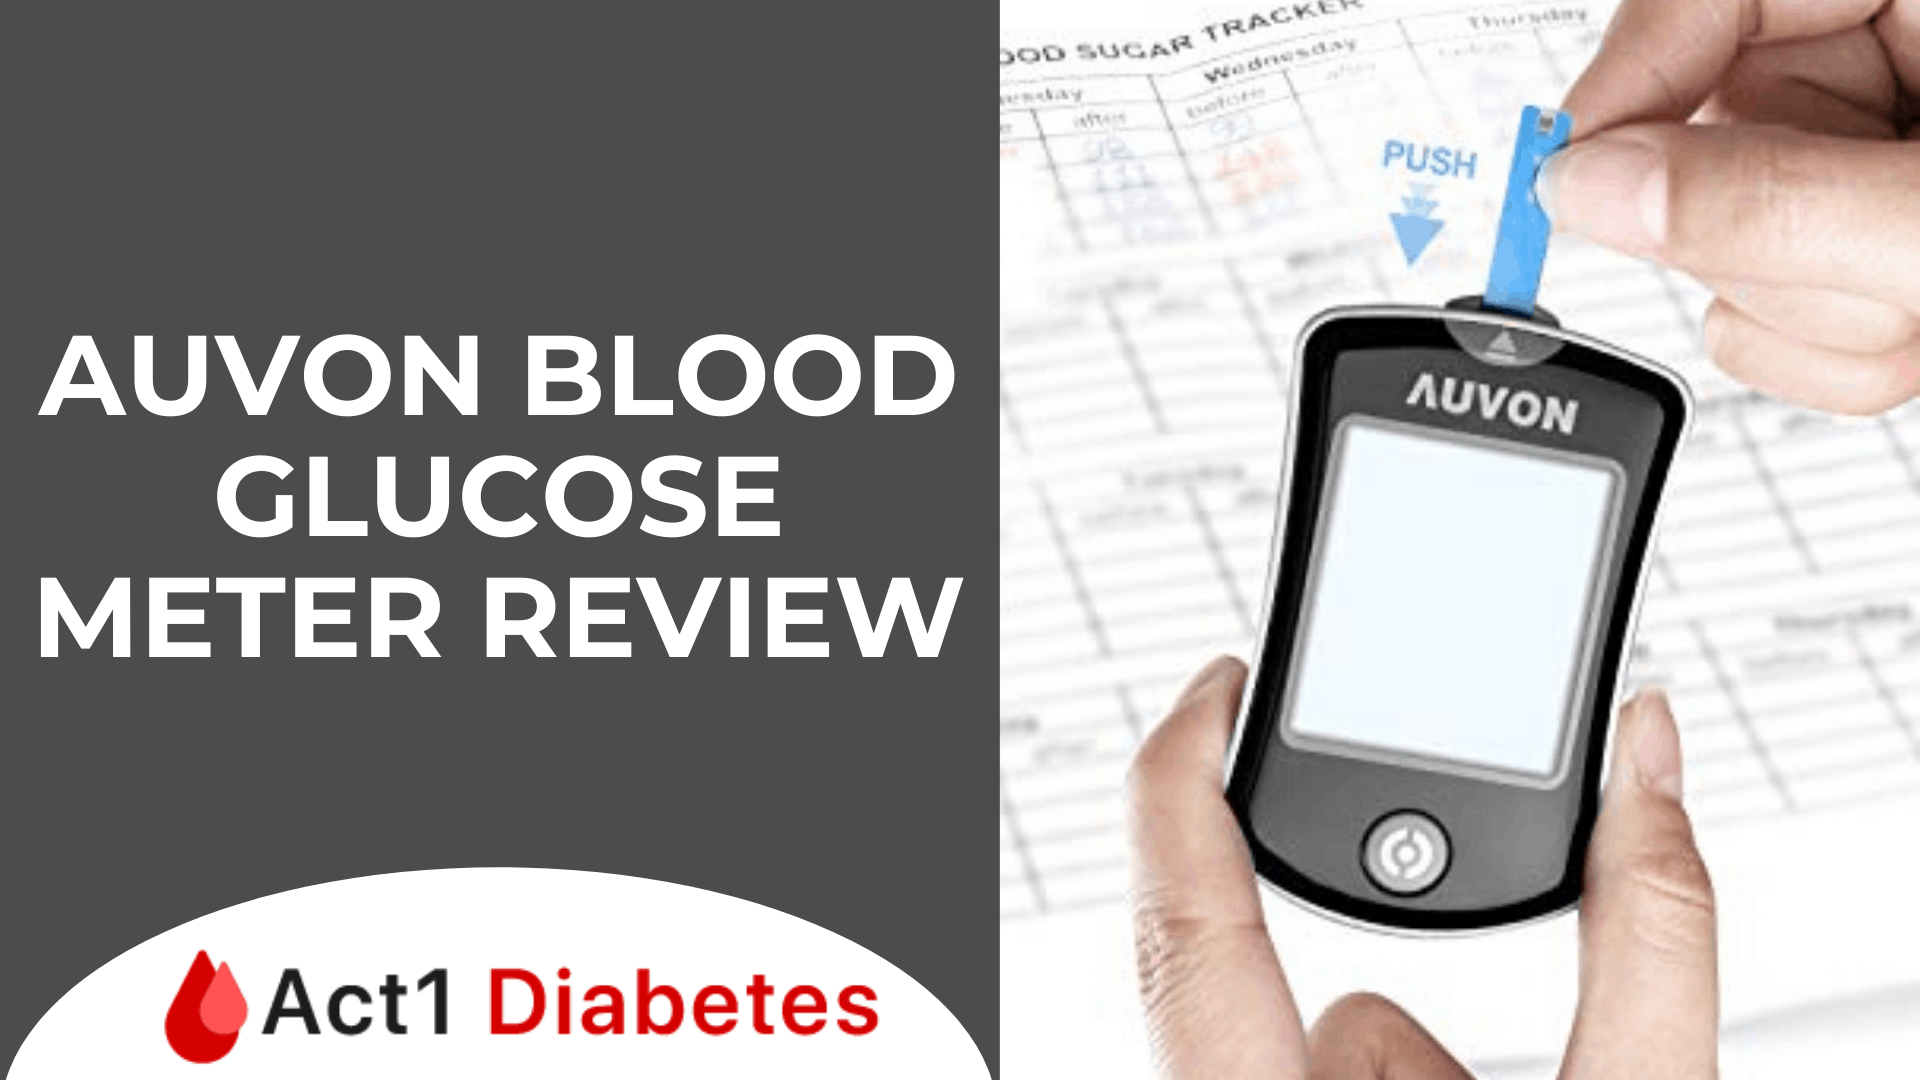 Auvon Blood Glucose Meter Review